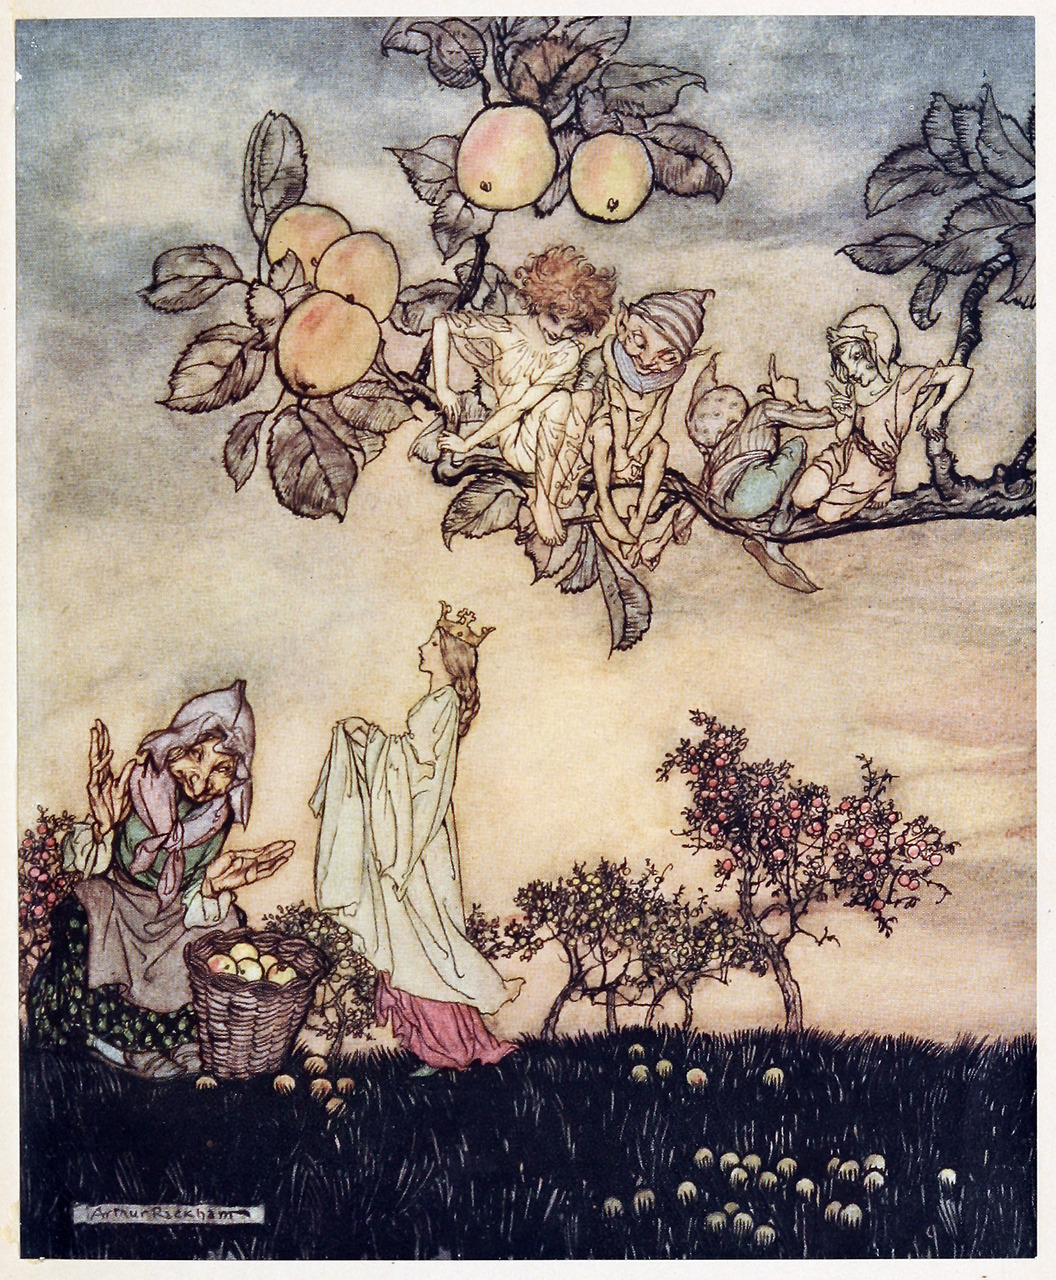 oldbookillustrations:  Lady's apple thou shalt be.Arthur Rackham, from A dish of apples, by Eden Phillpotts, London, 1921.Via archive.org.